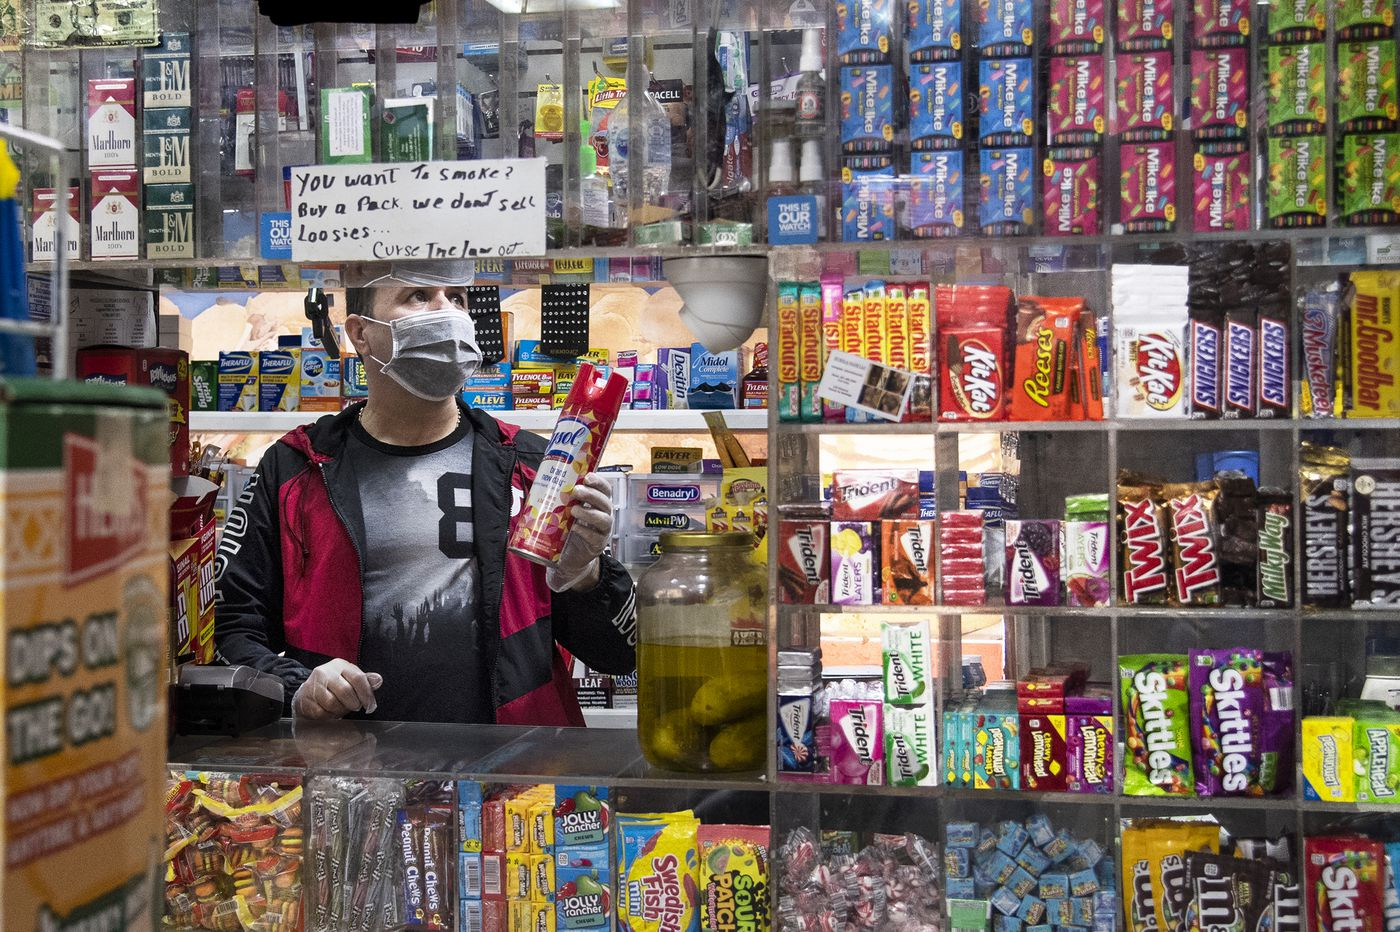 With language, internet challenges slowing access to relief funds, Philly bodega owners struggle to stay open